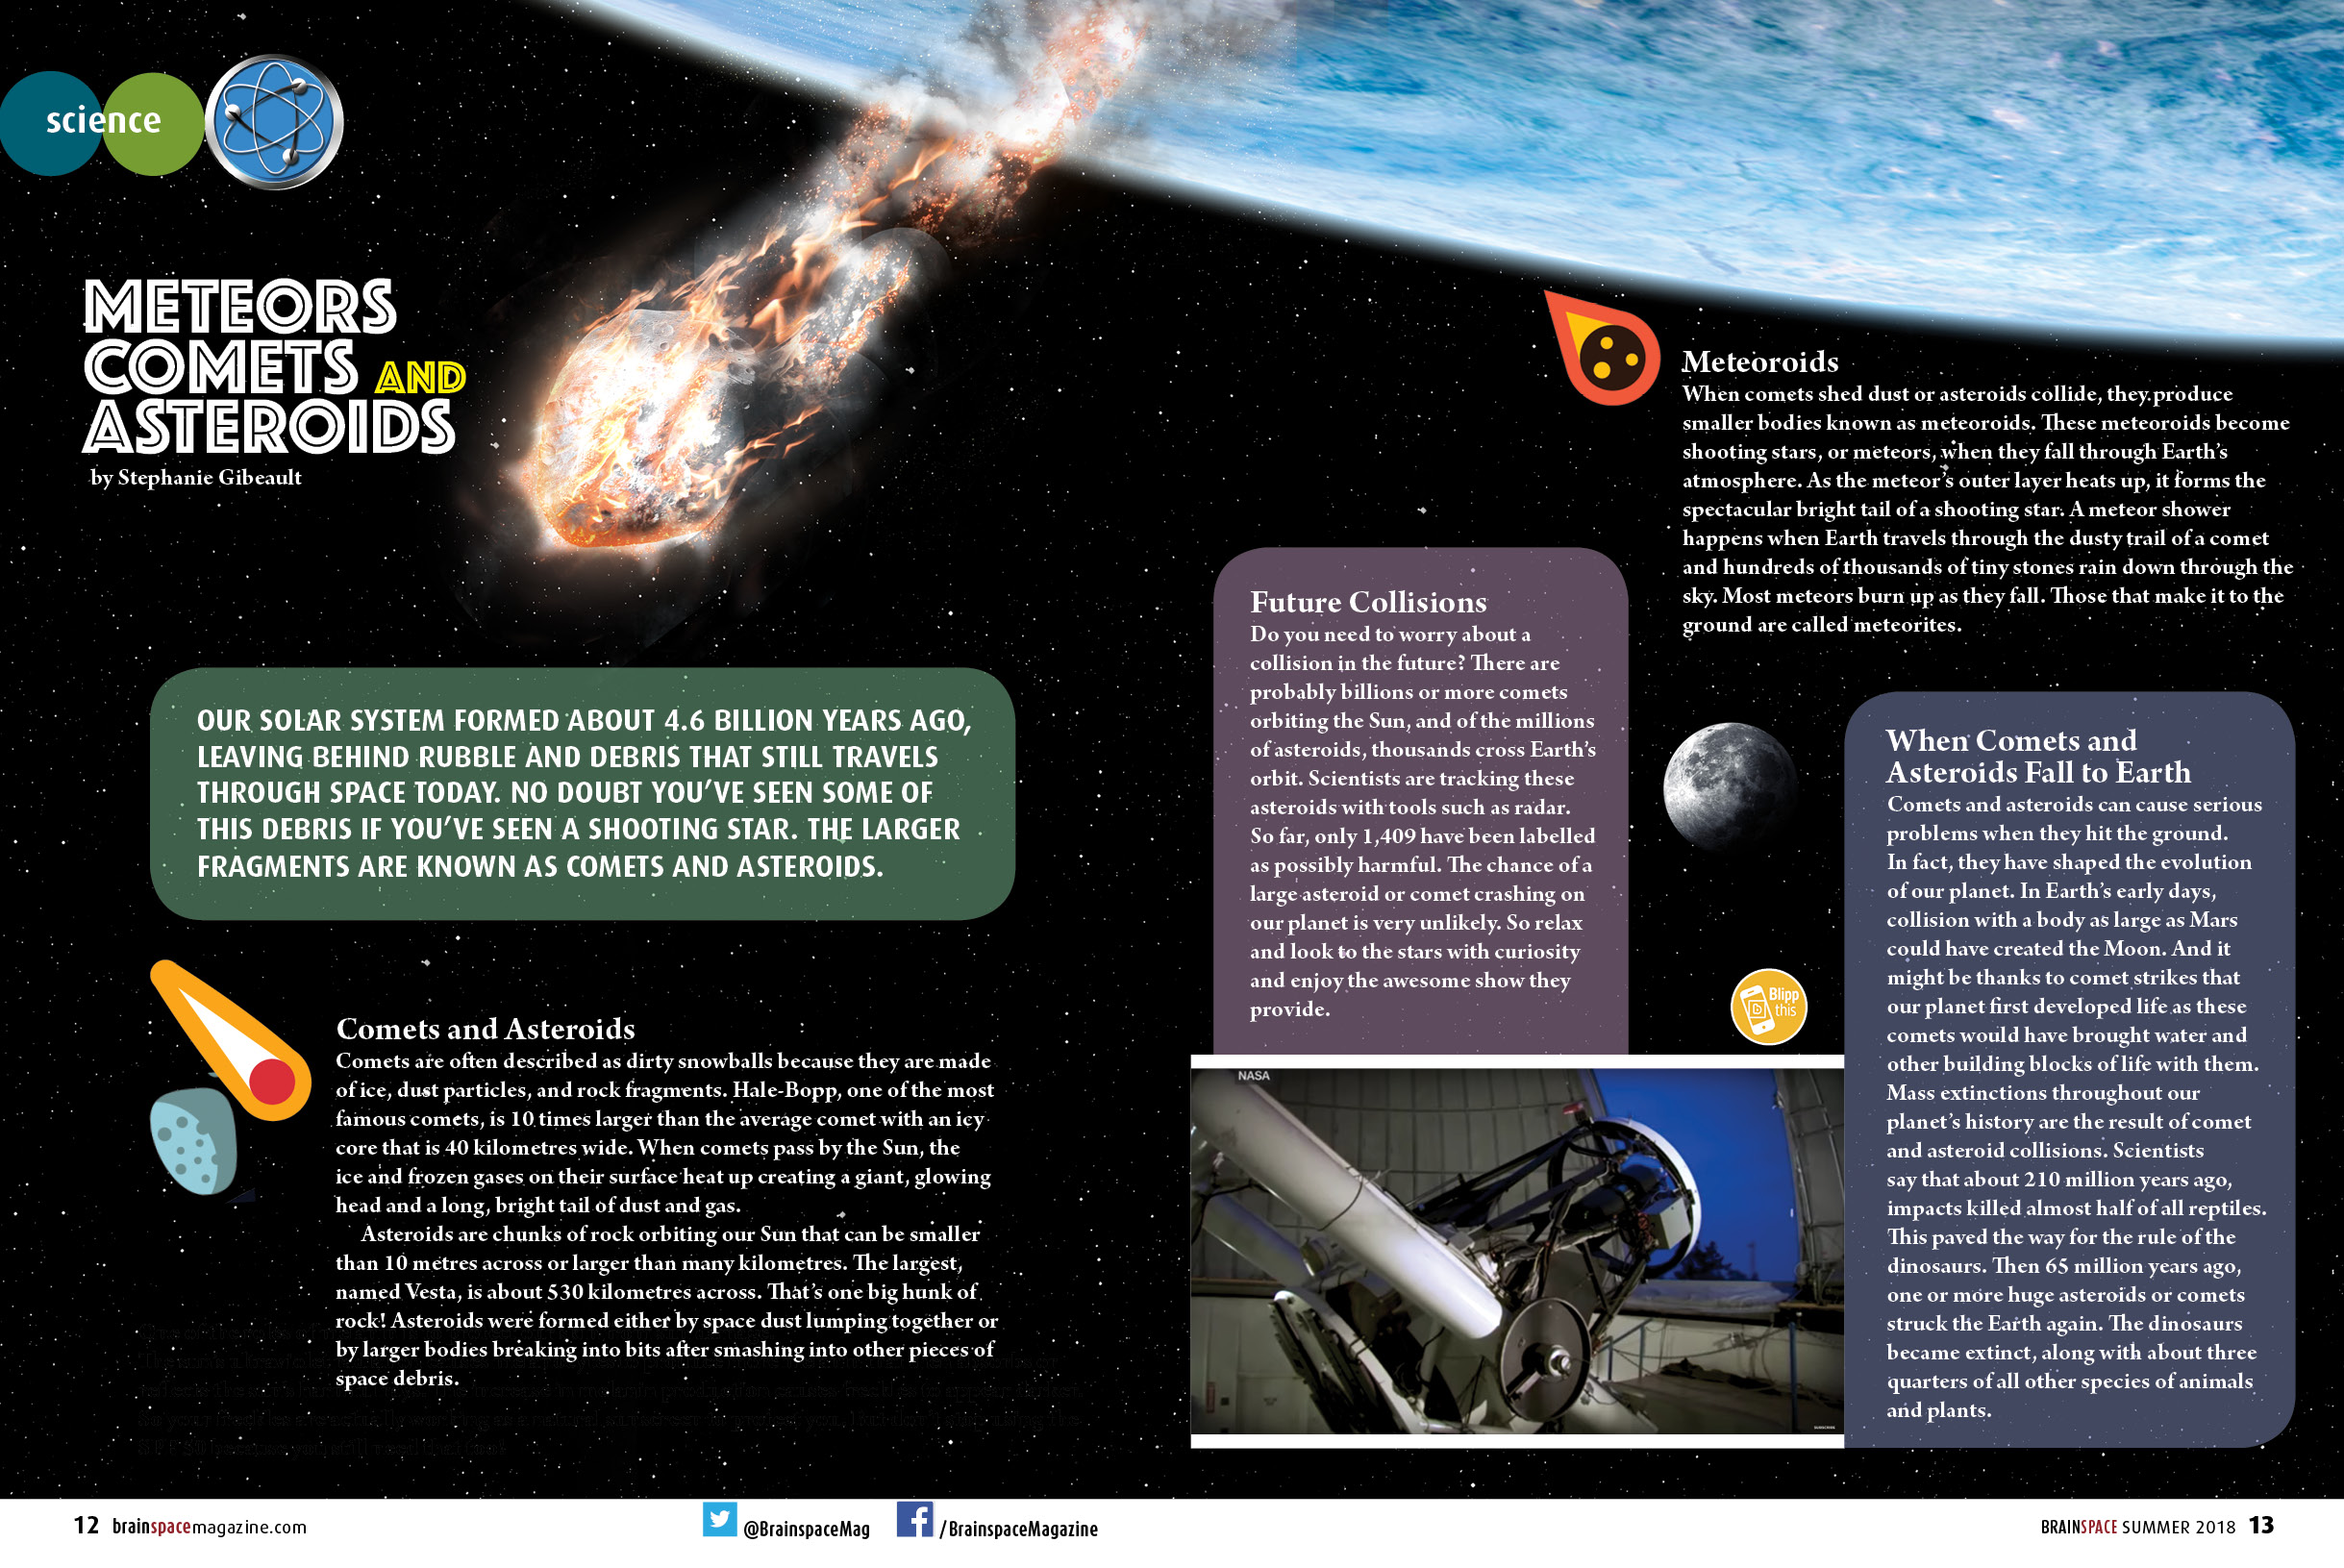 Why We Love Space - Brainspace Augmented Reality Magazine